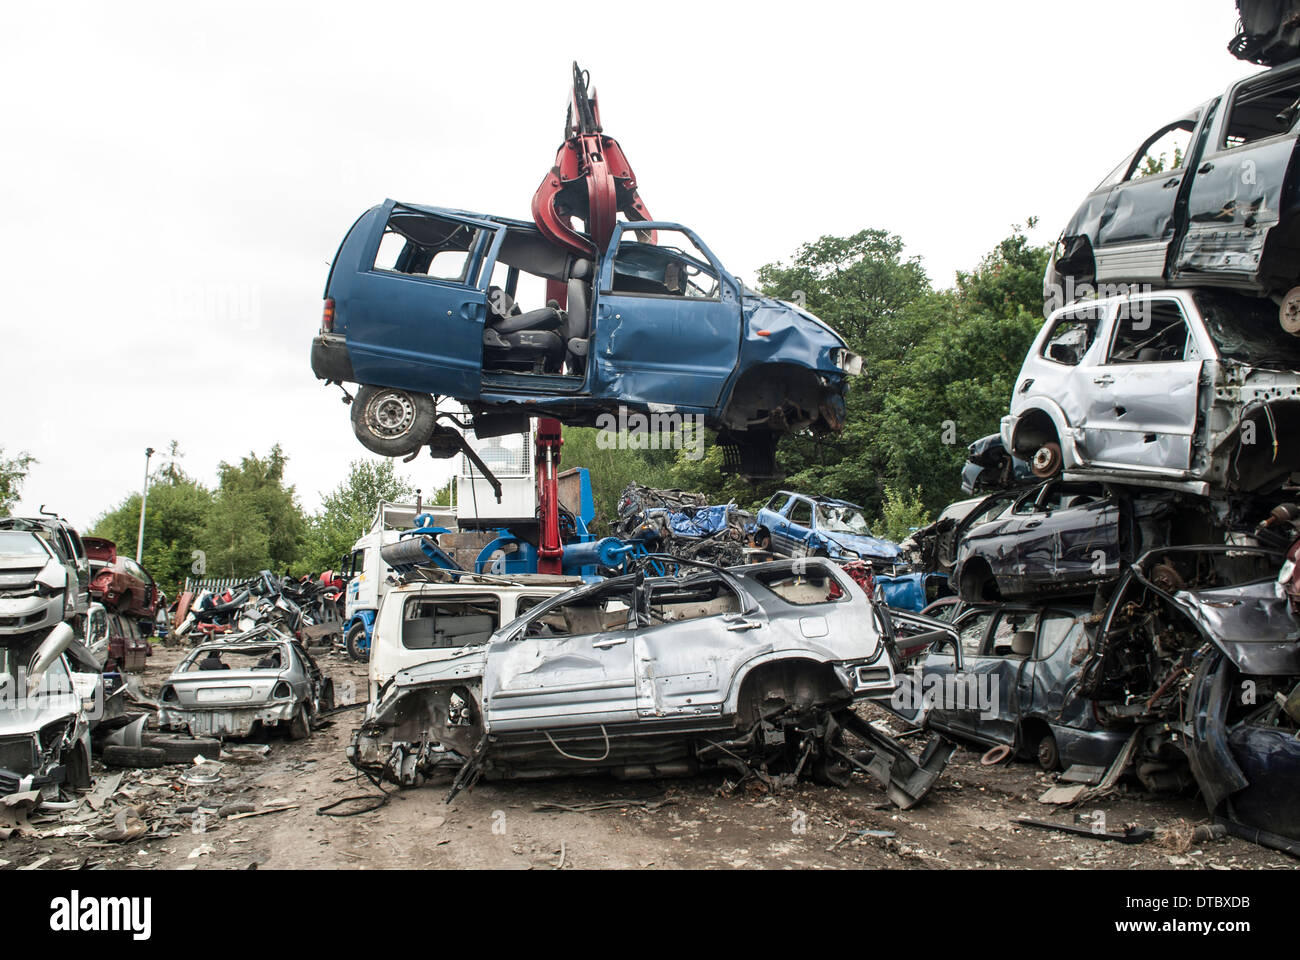 crushed cars in scrap yard uk stock photo royalty free. Black Bedroom Furniture Sets. Home Design Ideas